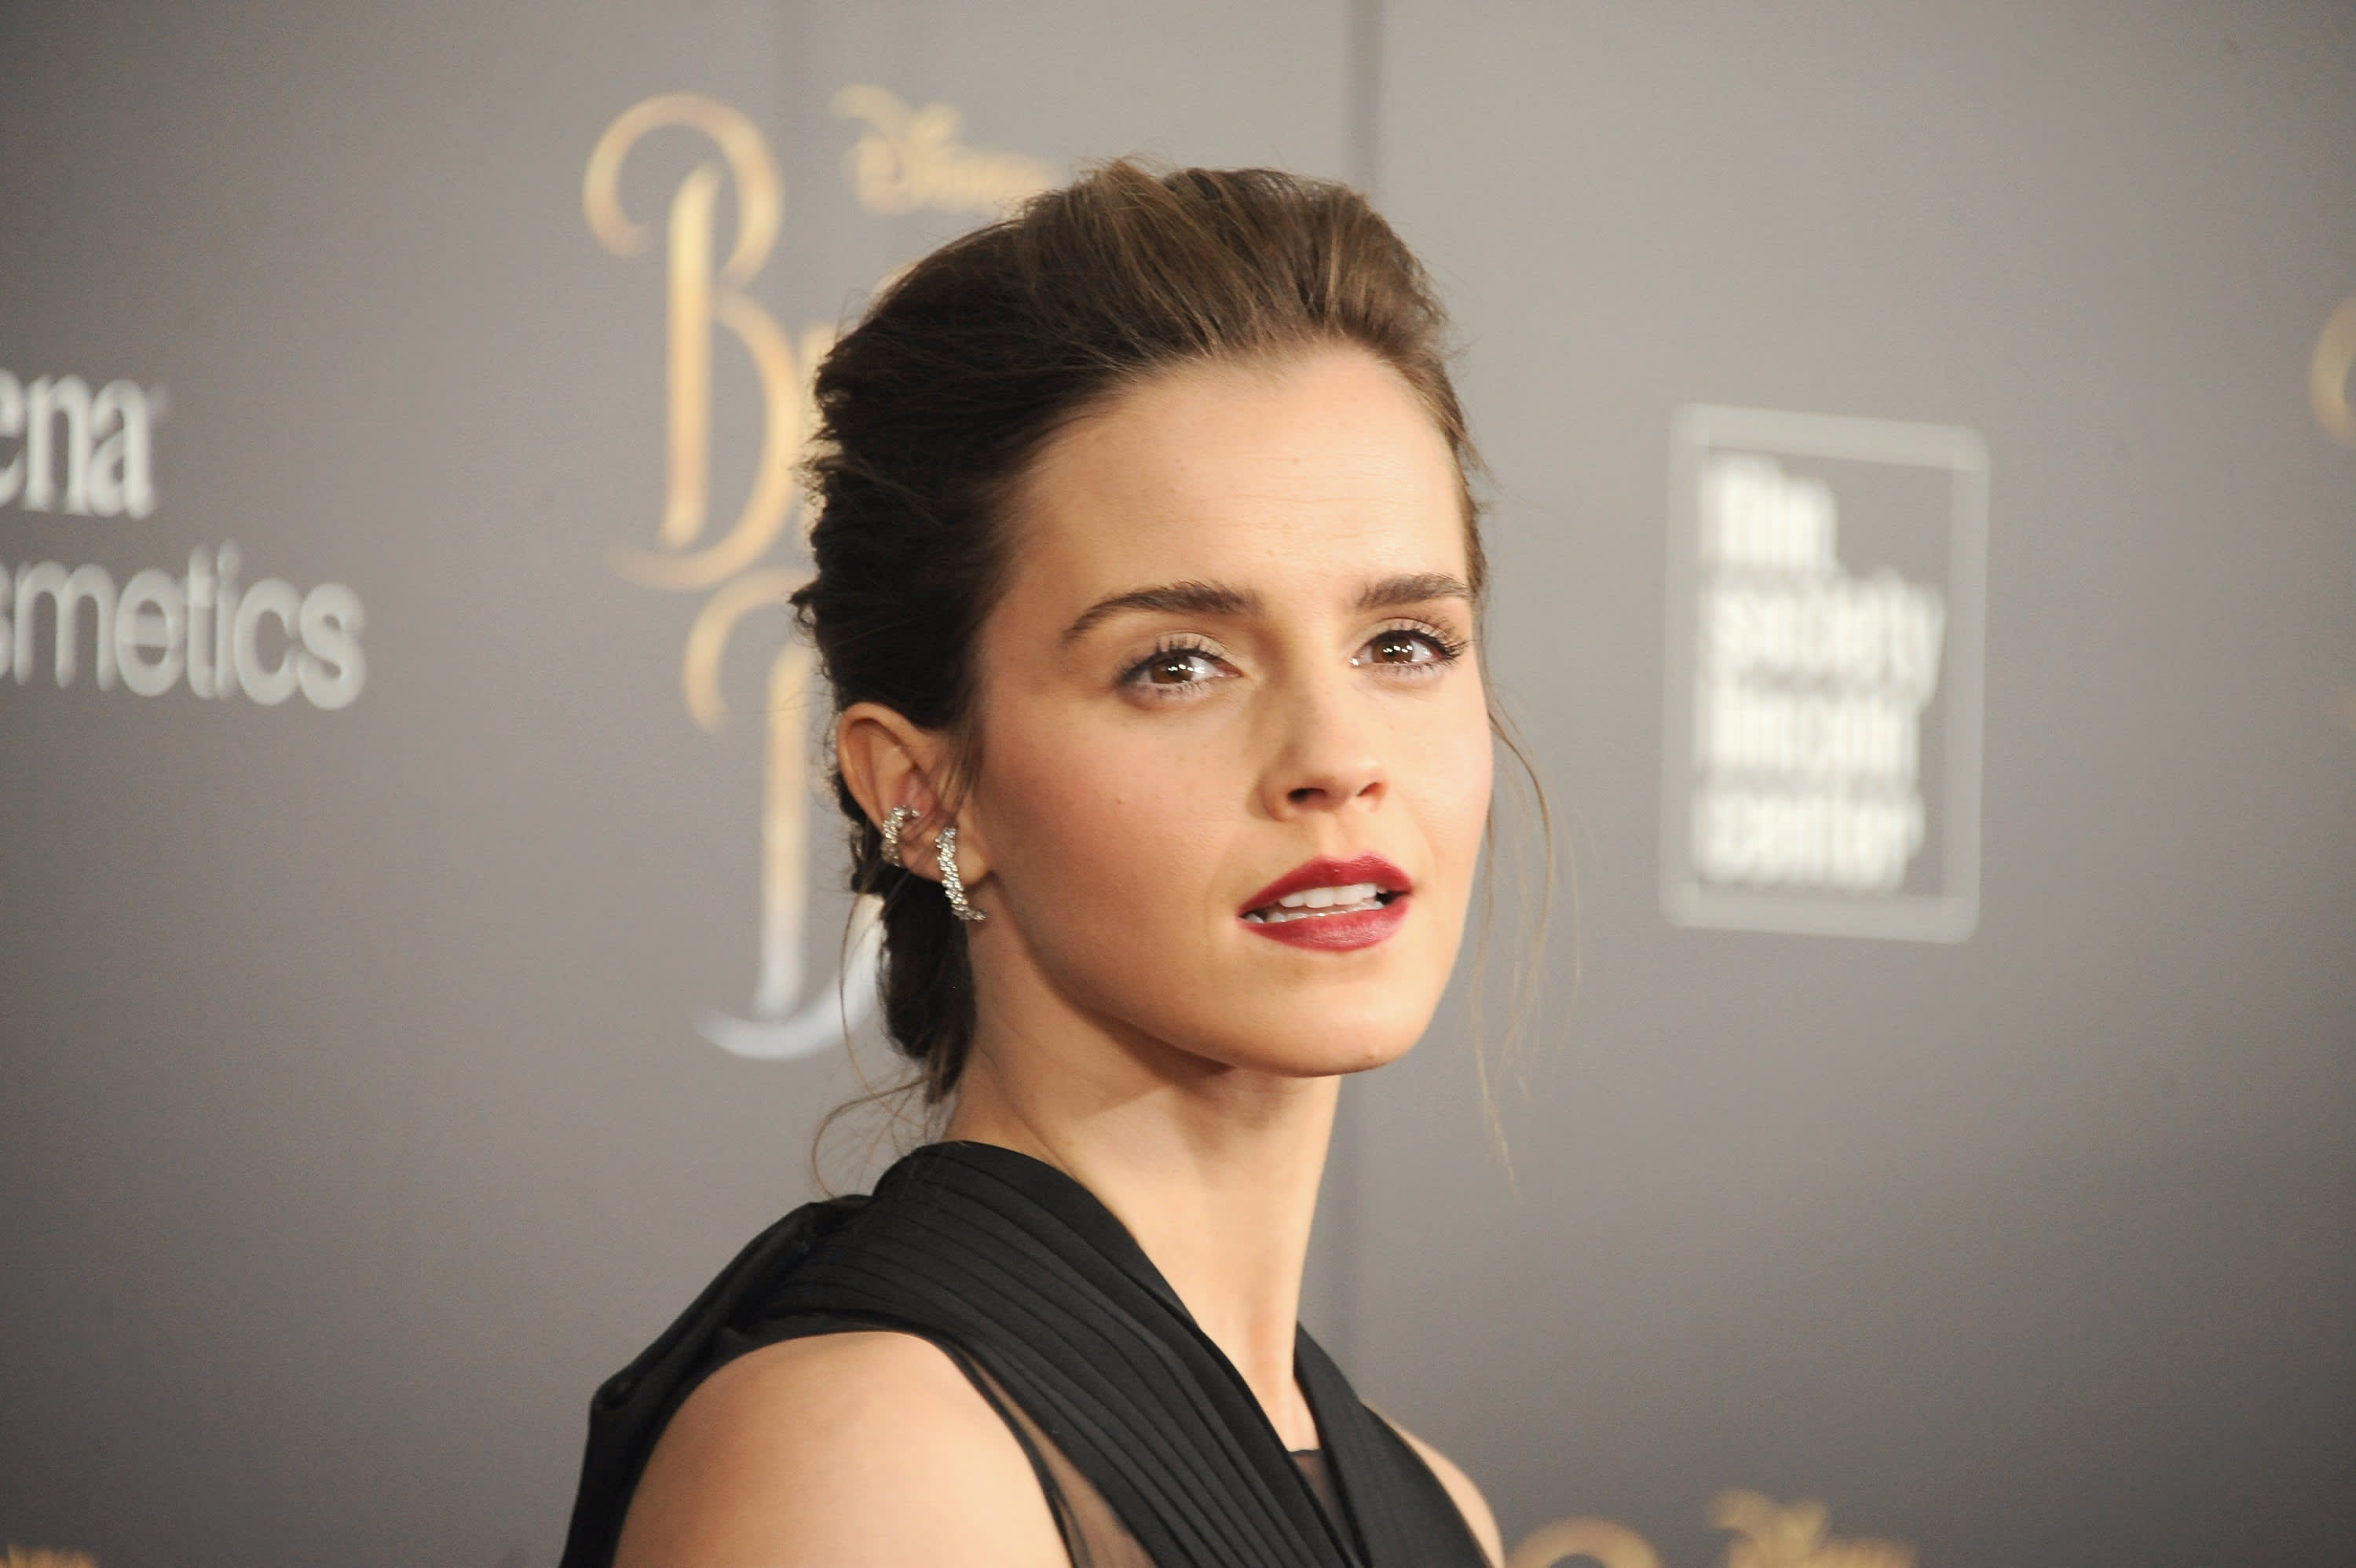 Emma Watson launches a free legal-advice hotline for women in the workplace